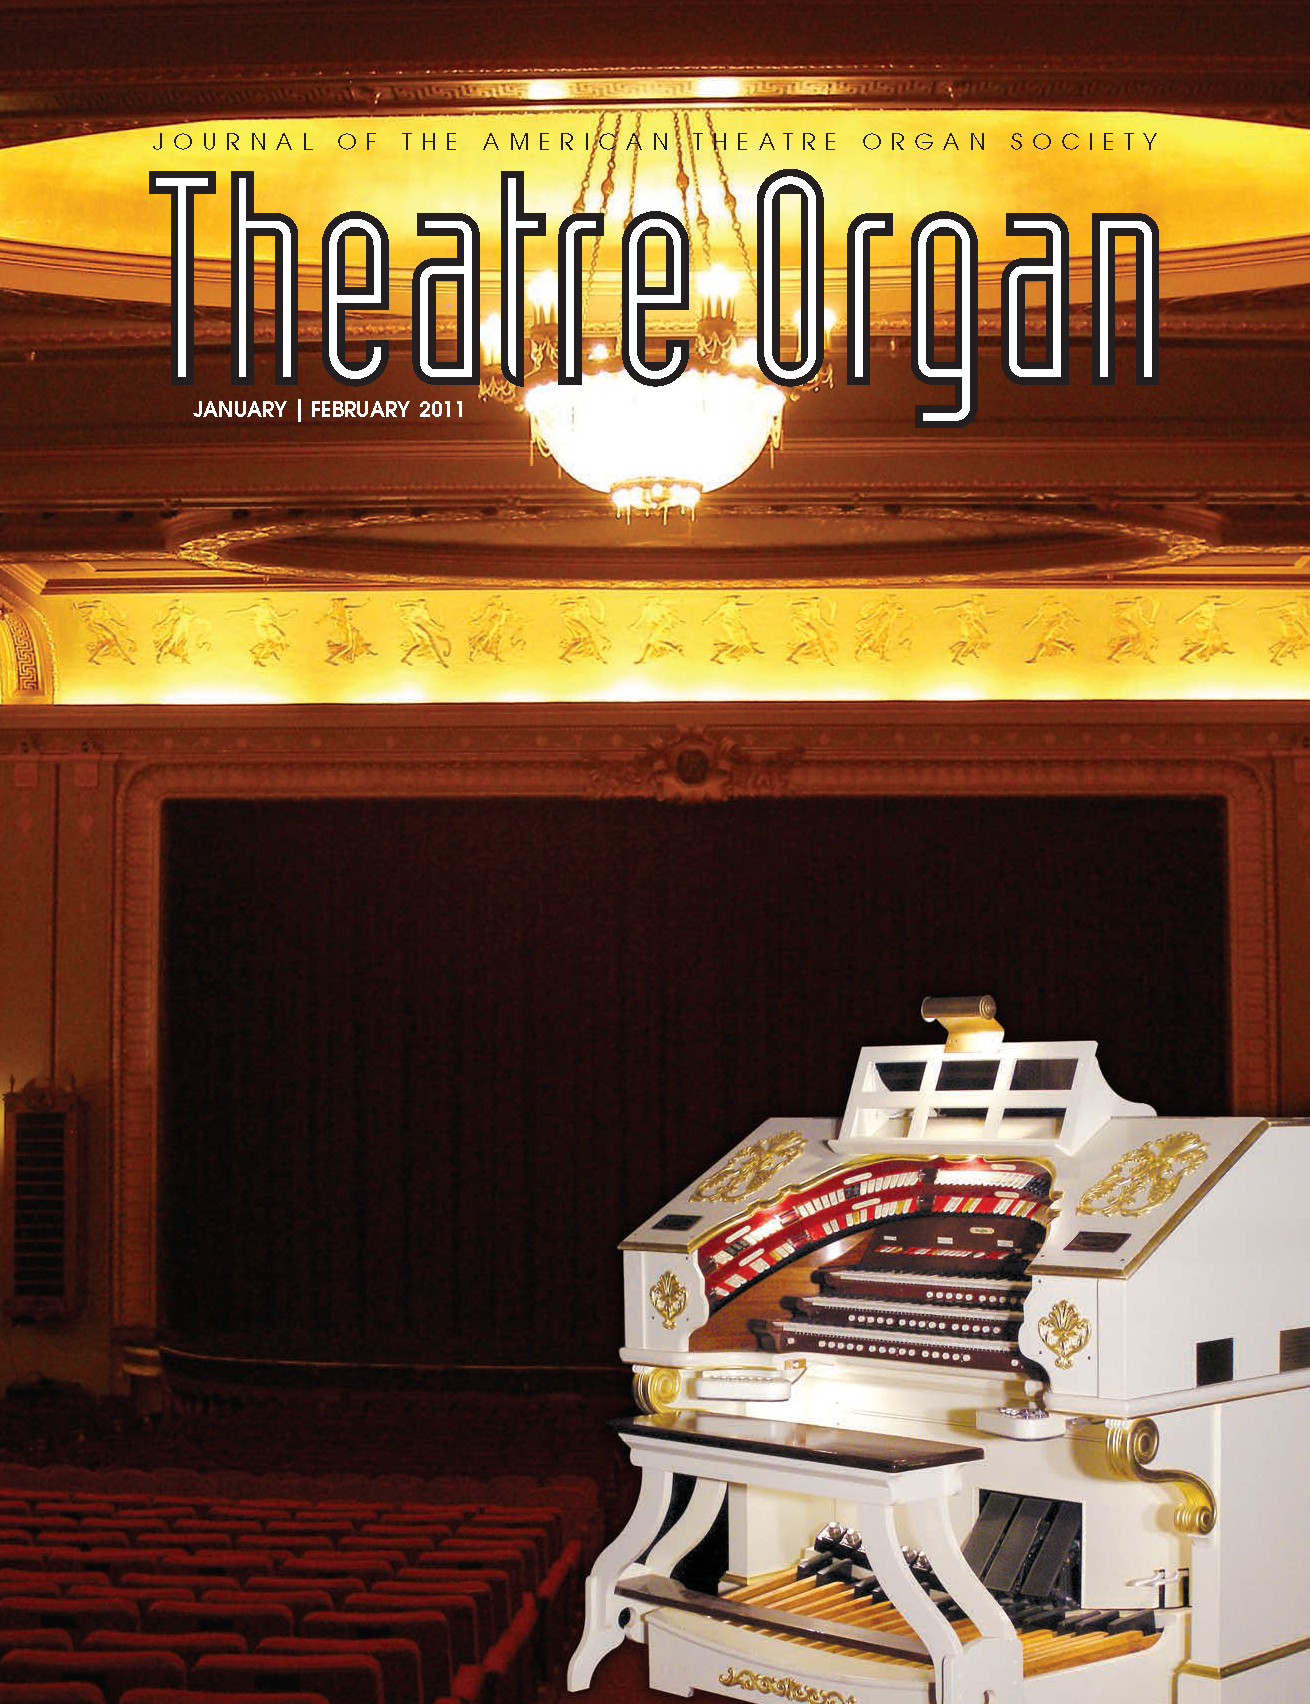 Theatre Organ, January - February 2011, Volume 53, Number 1